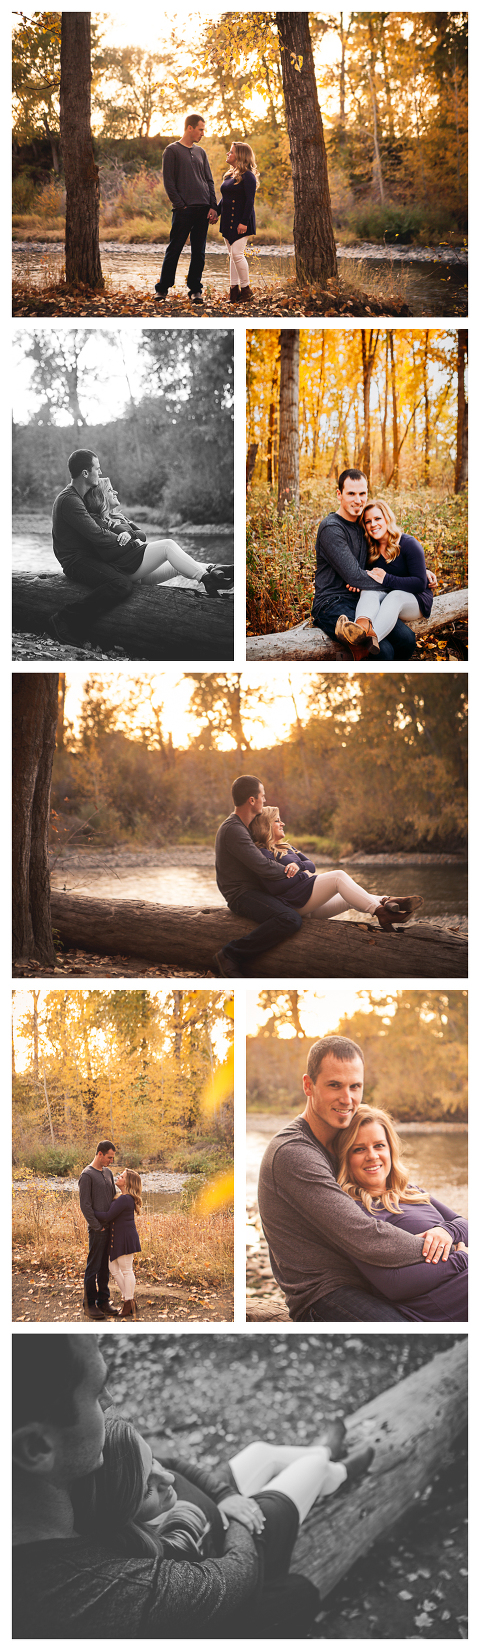 Lamberts, Ellensburg Couples Lifestyle Photography